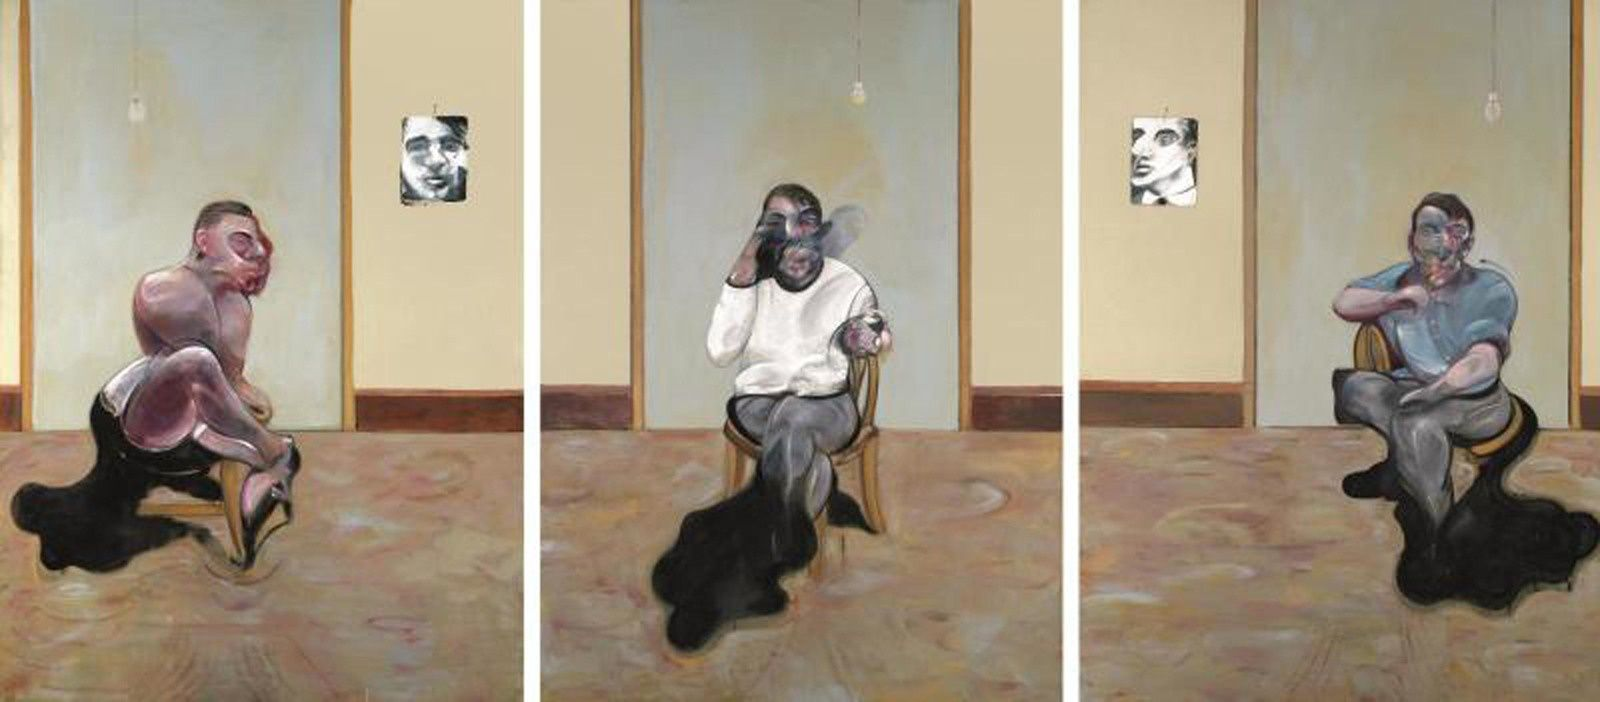 """""Three Portraits - Posthumous of George Dyer; Self-Portrait; Portrait of Lucian Freud"", 1973 de Francis BACON - The Estate of Francis Bacon. All rights reserved. DACS/Artimage 2019. Photo: Prudence Cuming Associates Ltd"